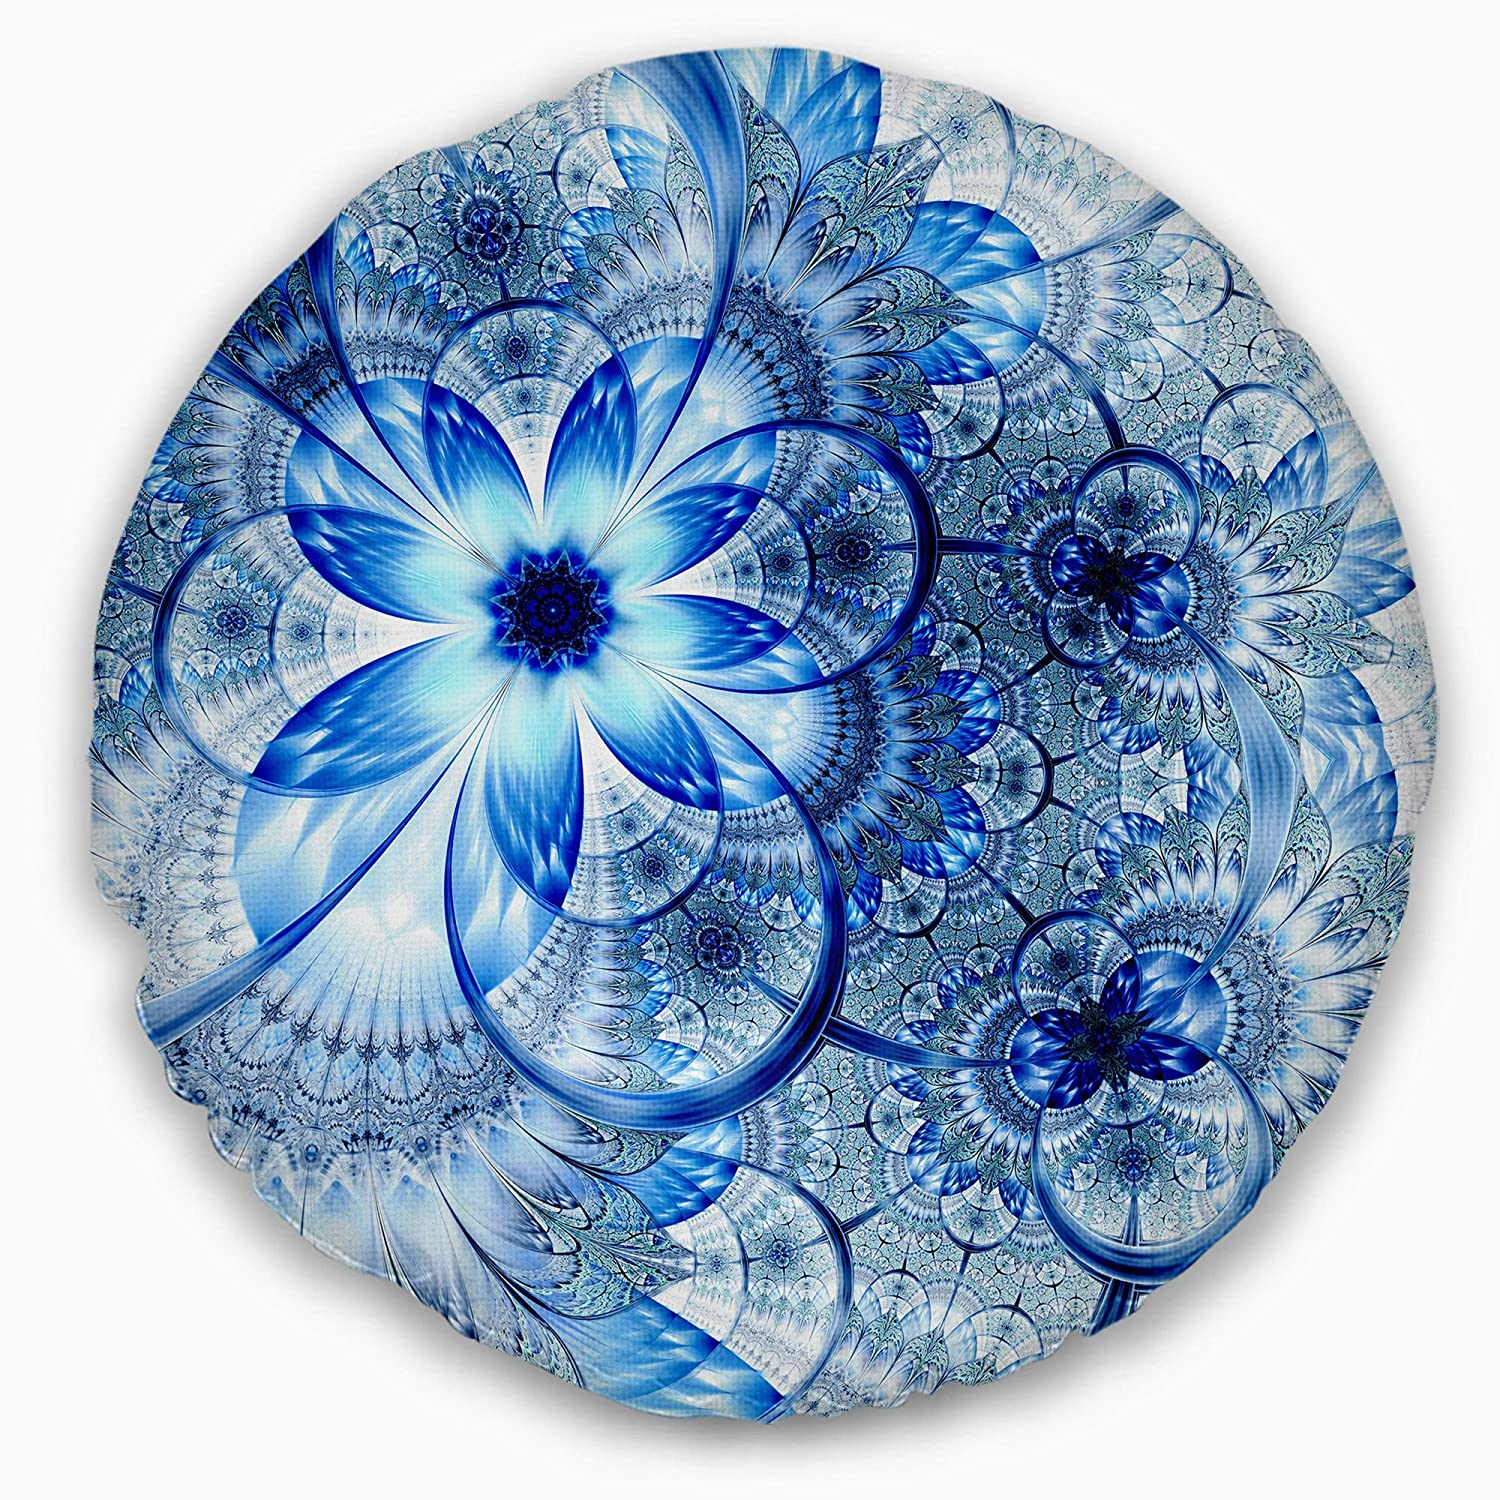 Designart CU11941-20-20-C Dark Blue Flower Pattern Design' Floral Round Cushion Cover for Living Room, Sofa Throw Pillow 20', Insert Printed On Both Side